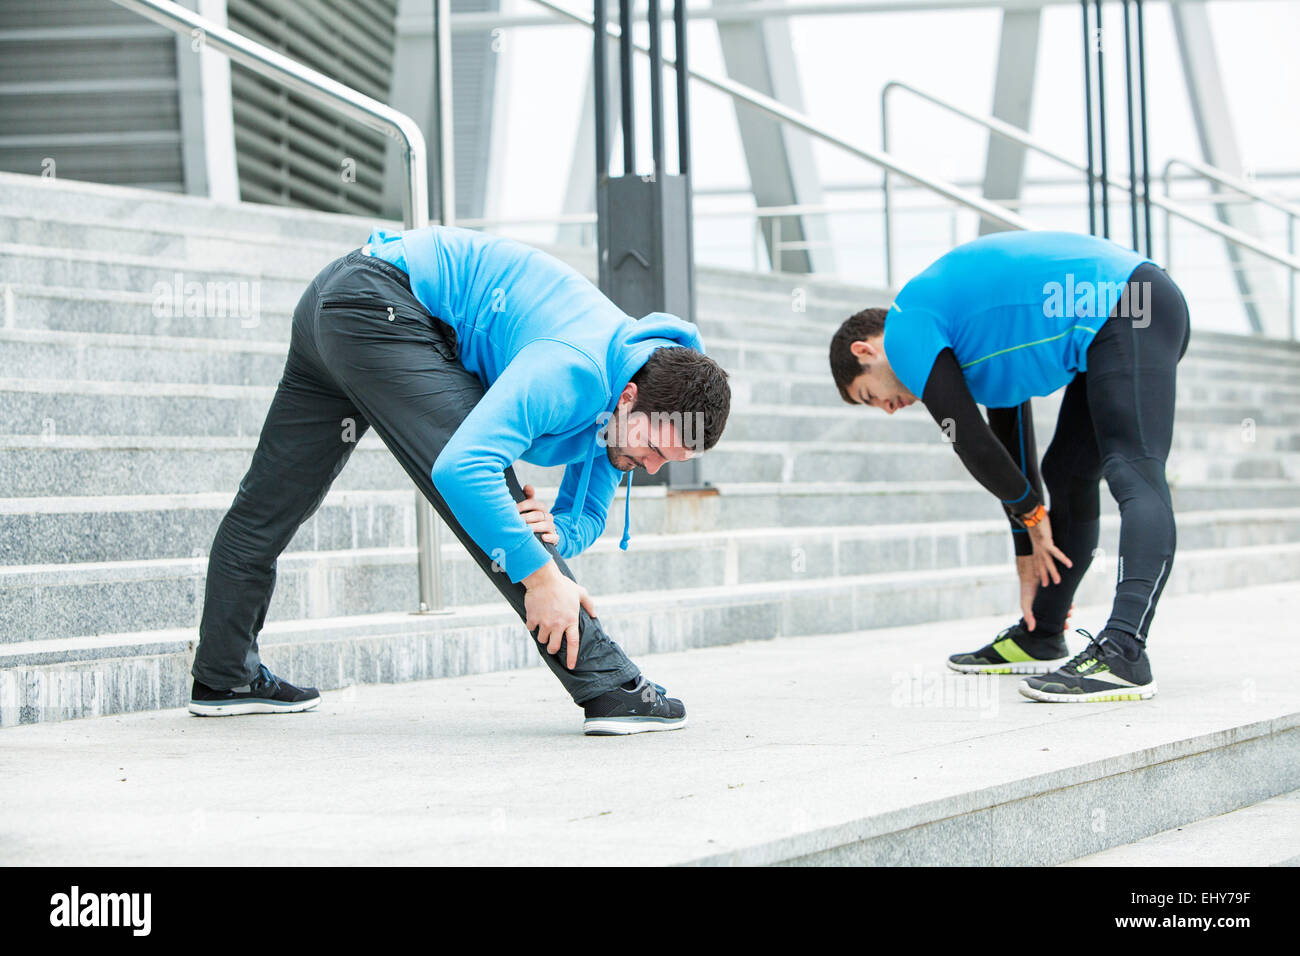 Male runners stretching and warming up together - Stock Image